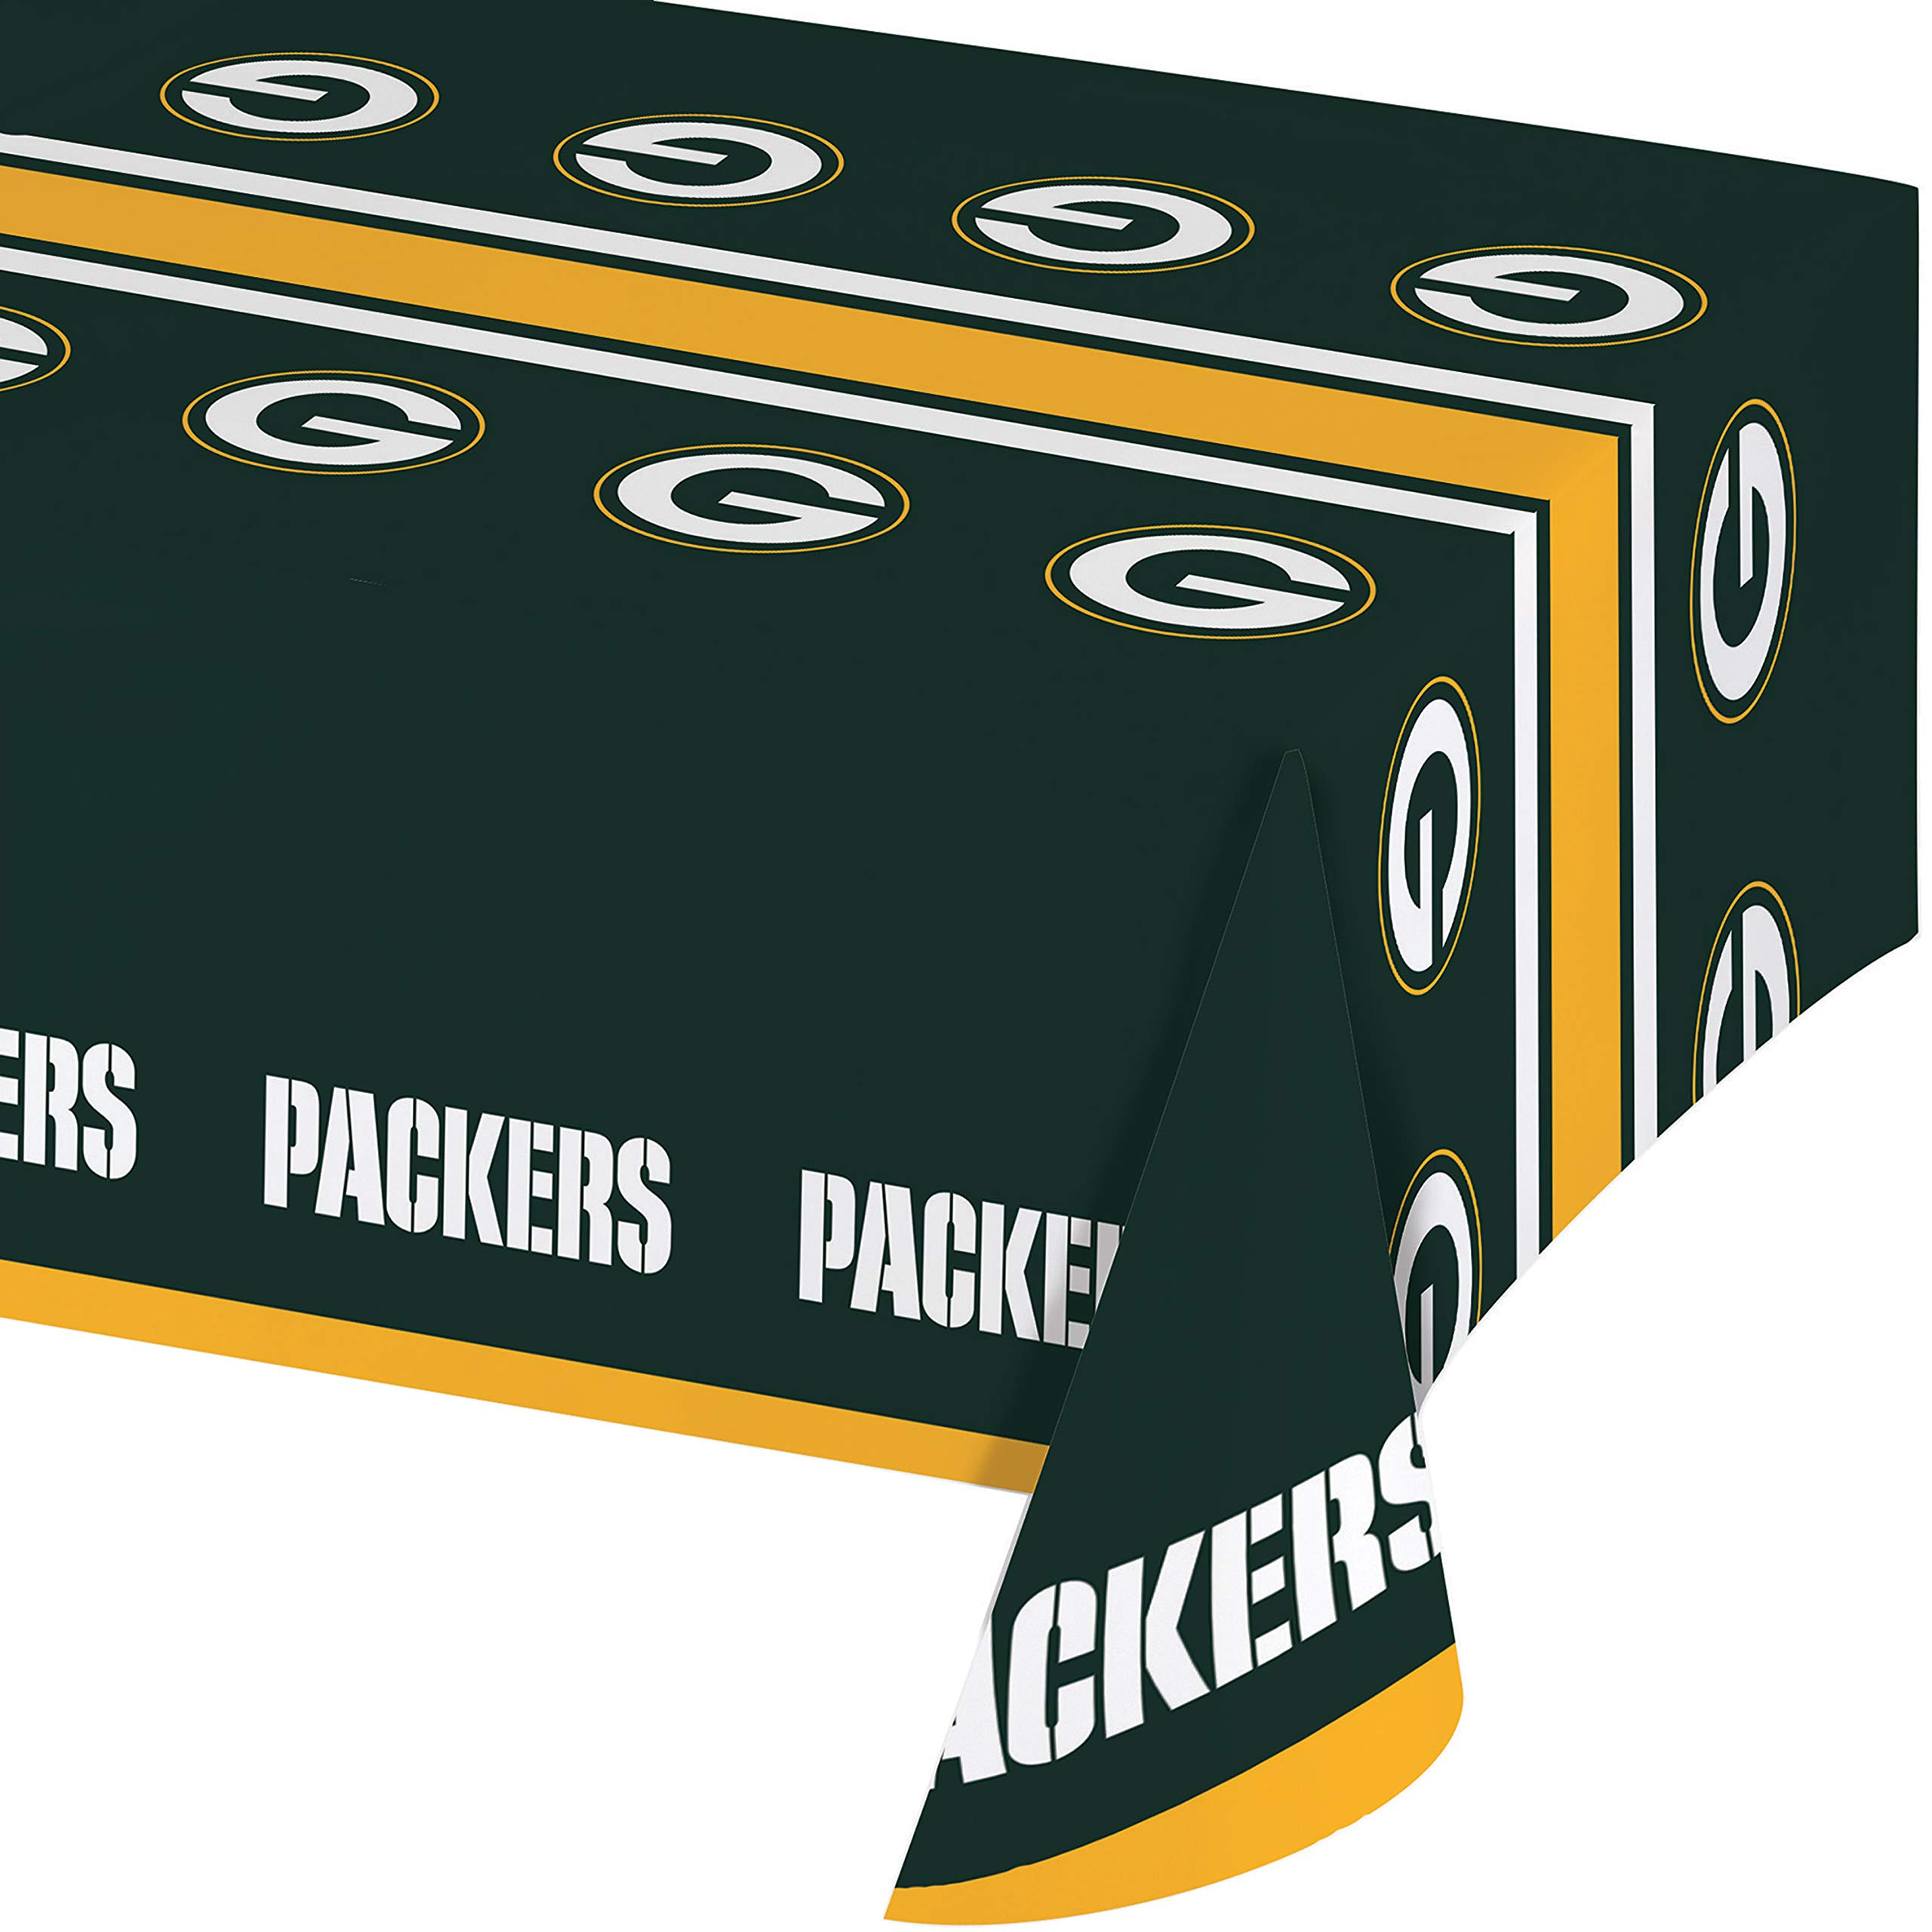 Green Bay Packers Plastic Tablecloths, 3 ct by Creative Converting